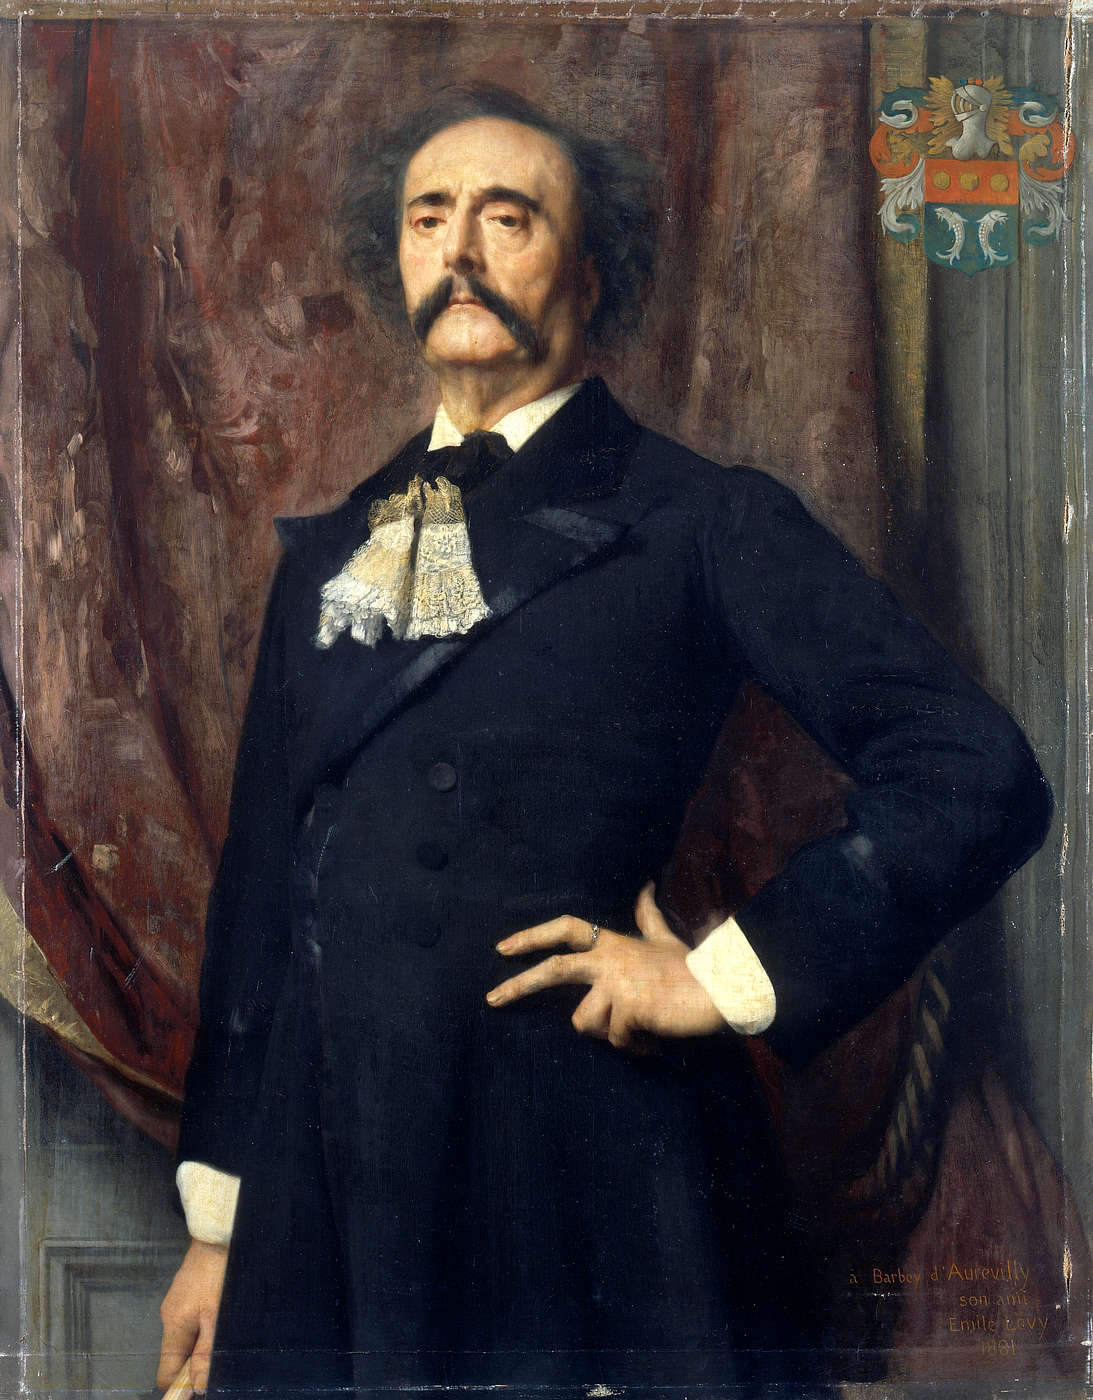 Portrait of Jules Amédée Barbey d'Aurevilly